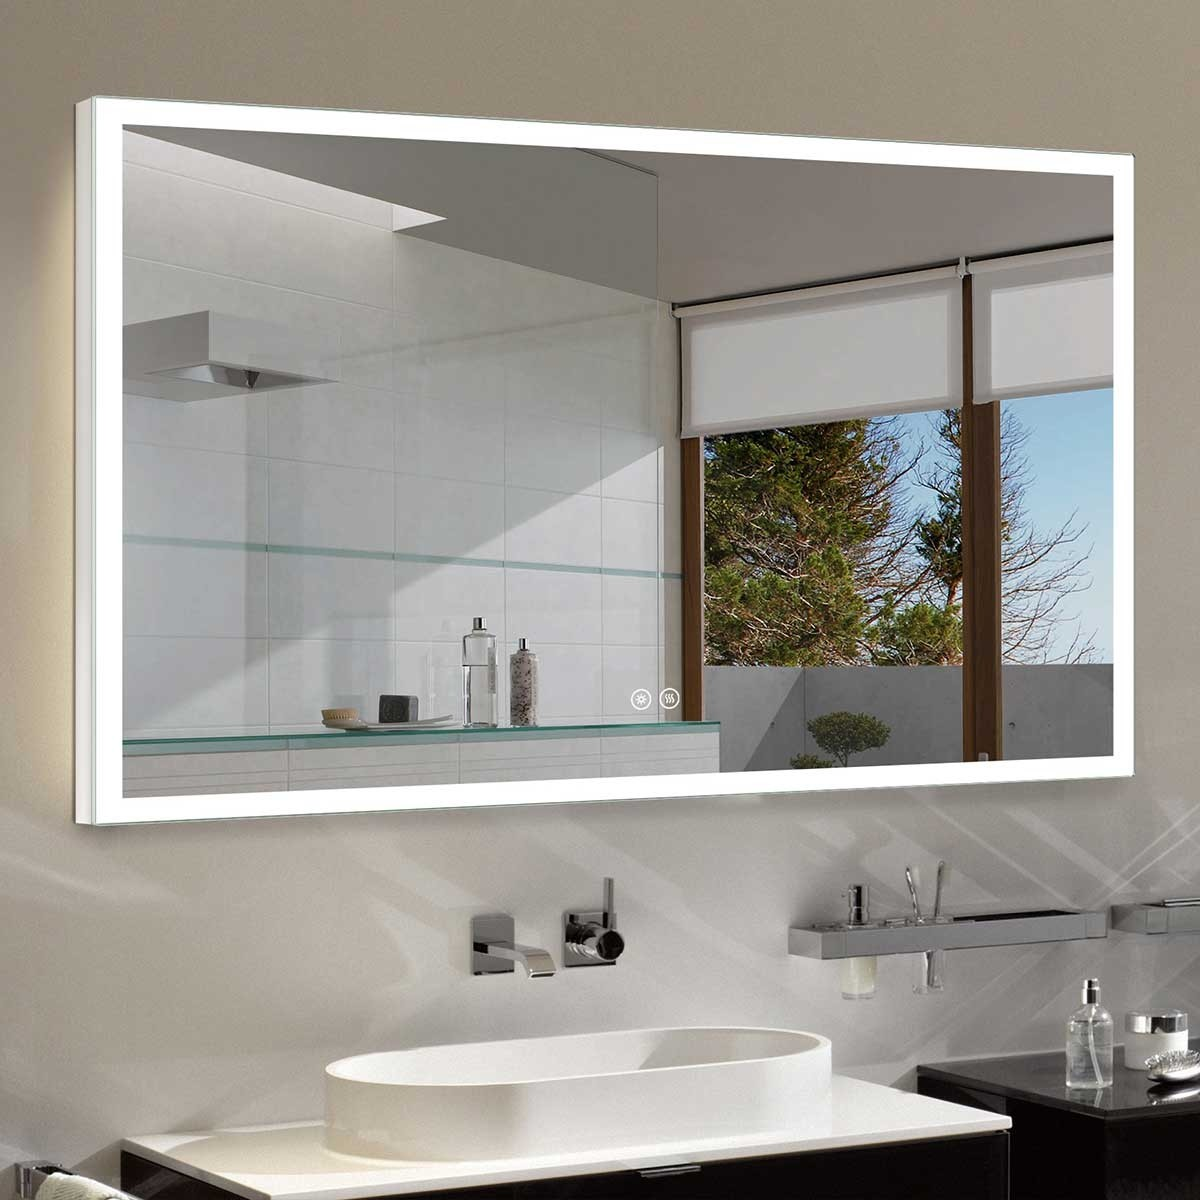 DECORAPORT 55 x 36 Inch LED Bathroom Mirror/Dress Mirror with Touch Button, Anti Fog, Dimmable, Vertical & Horizontal Mount (NT05-5536)